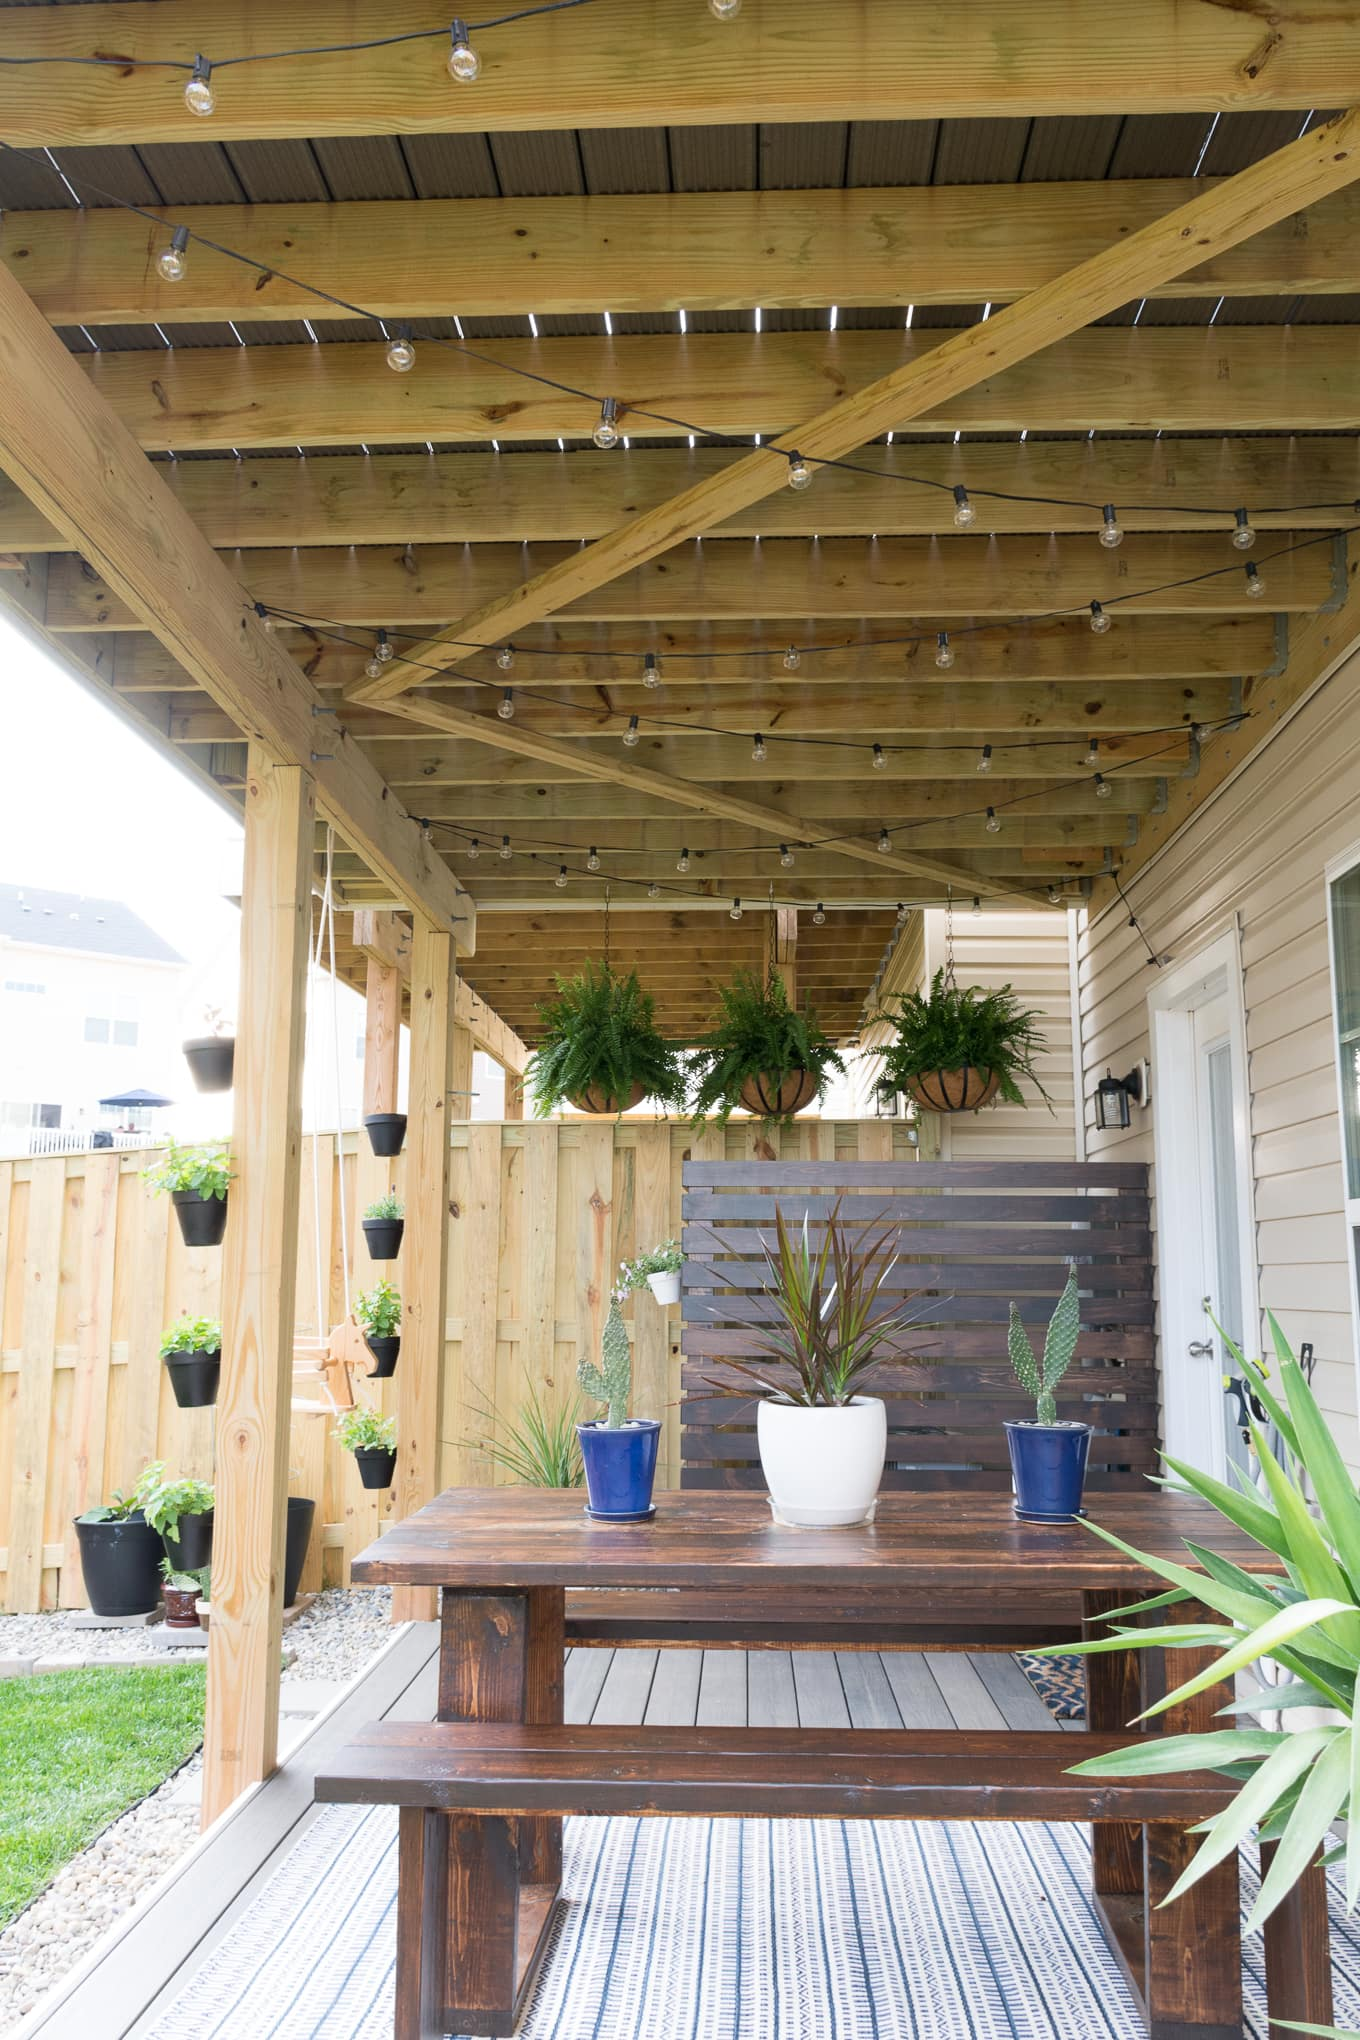 Modern design ideas for a small backyard // My Tiny Backyard // by Brittany Goldwyn